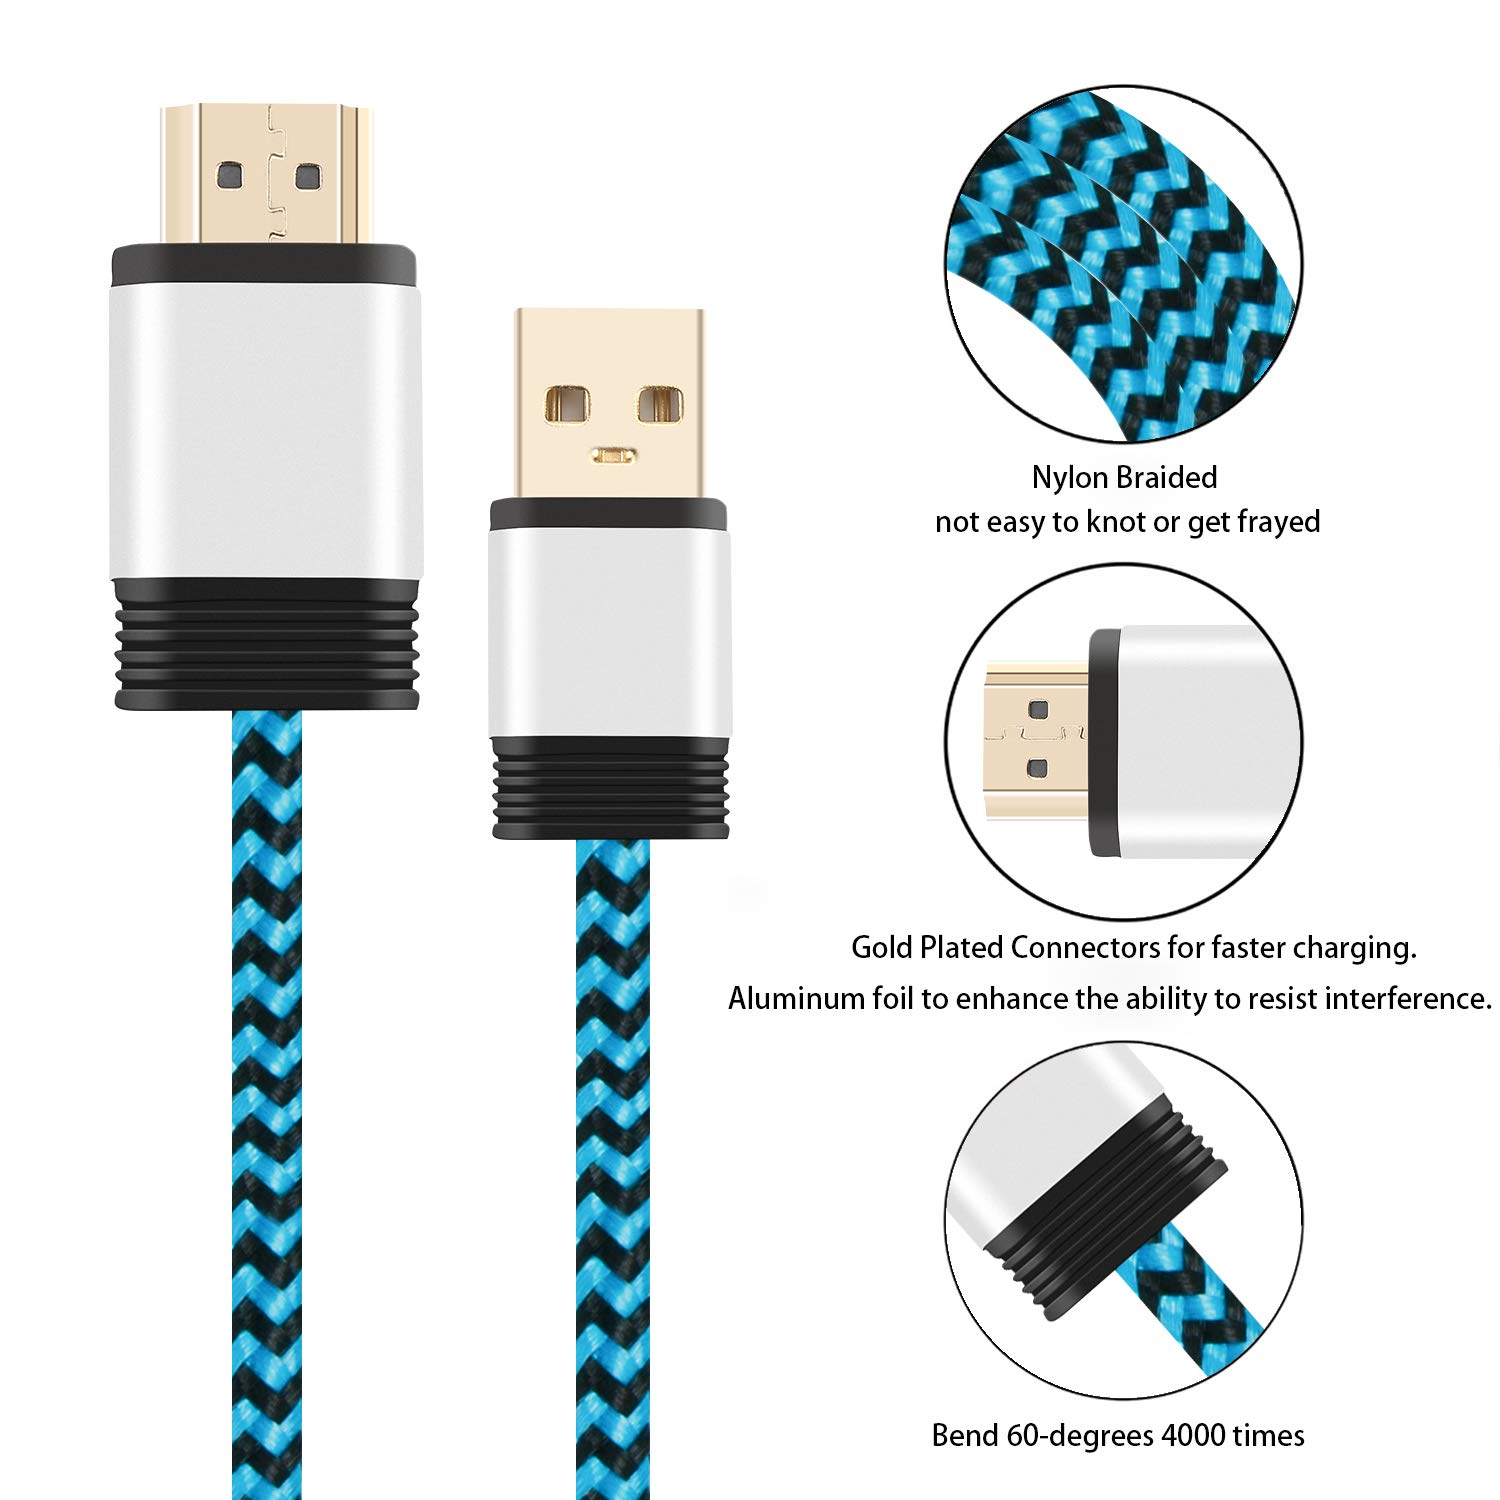 Aluminum Shell, Nylon Braided Yeebline USB 2.0 Type A Male to HDMI Male Charging Adapter Converter Cable Cord 0.5M USB to HDMI Charger Cable